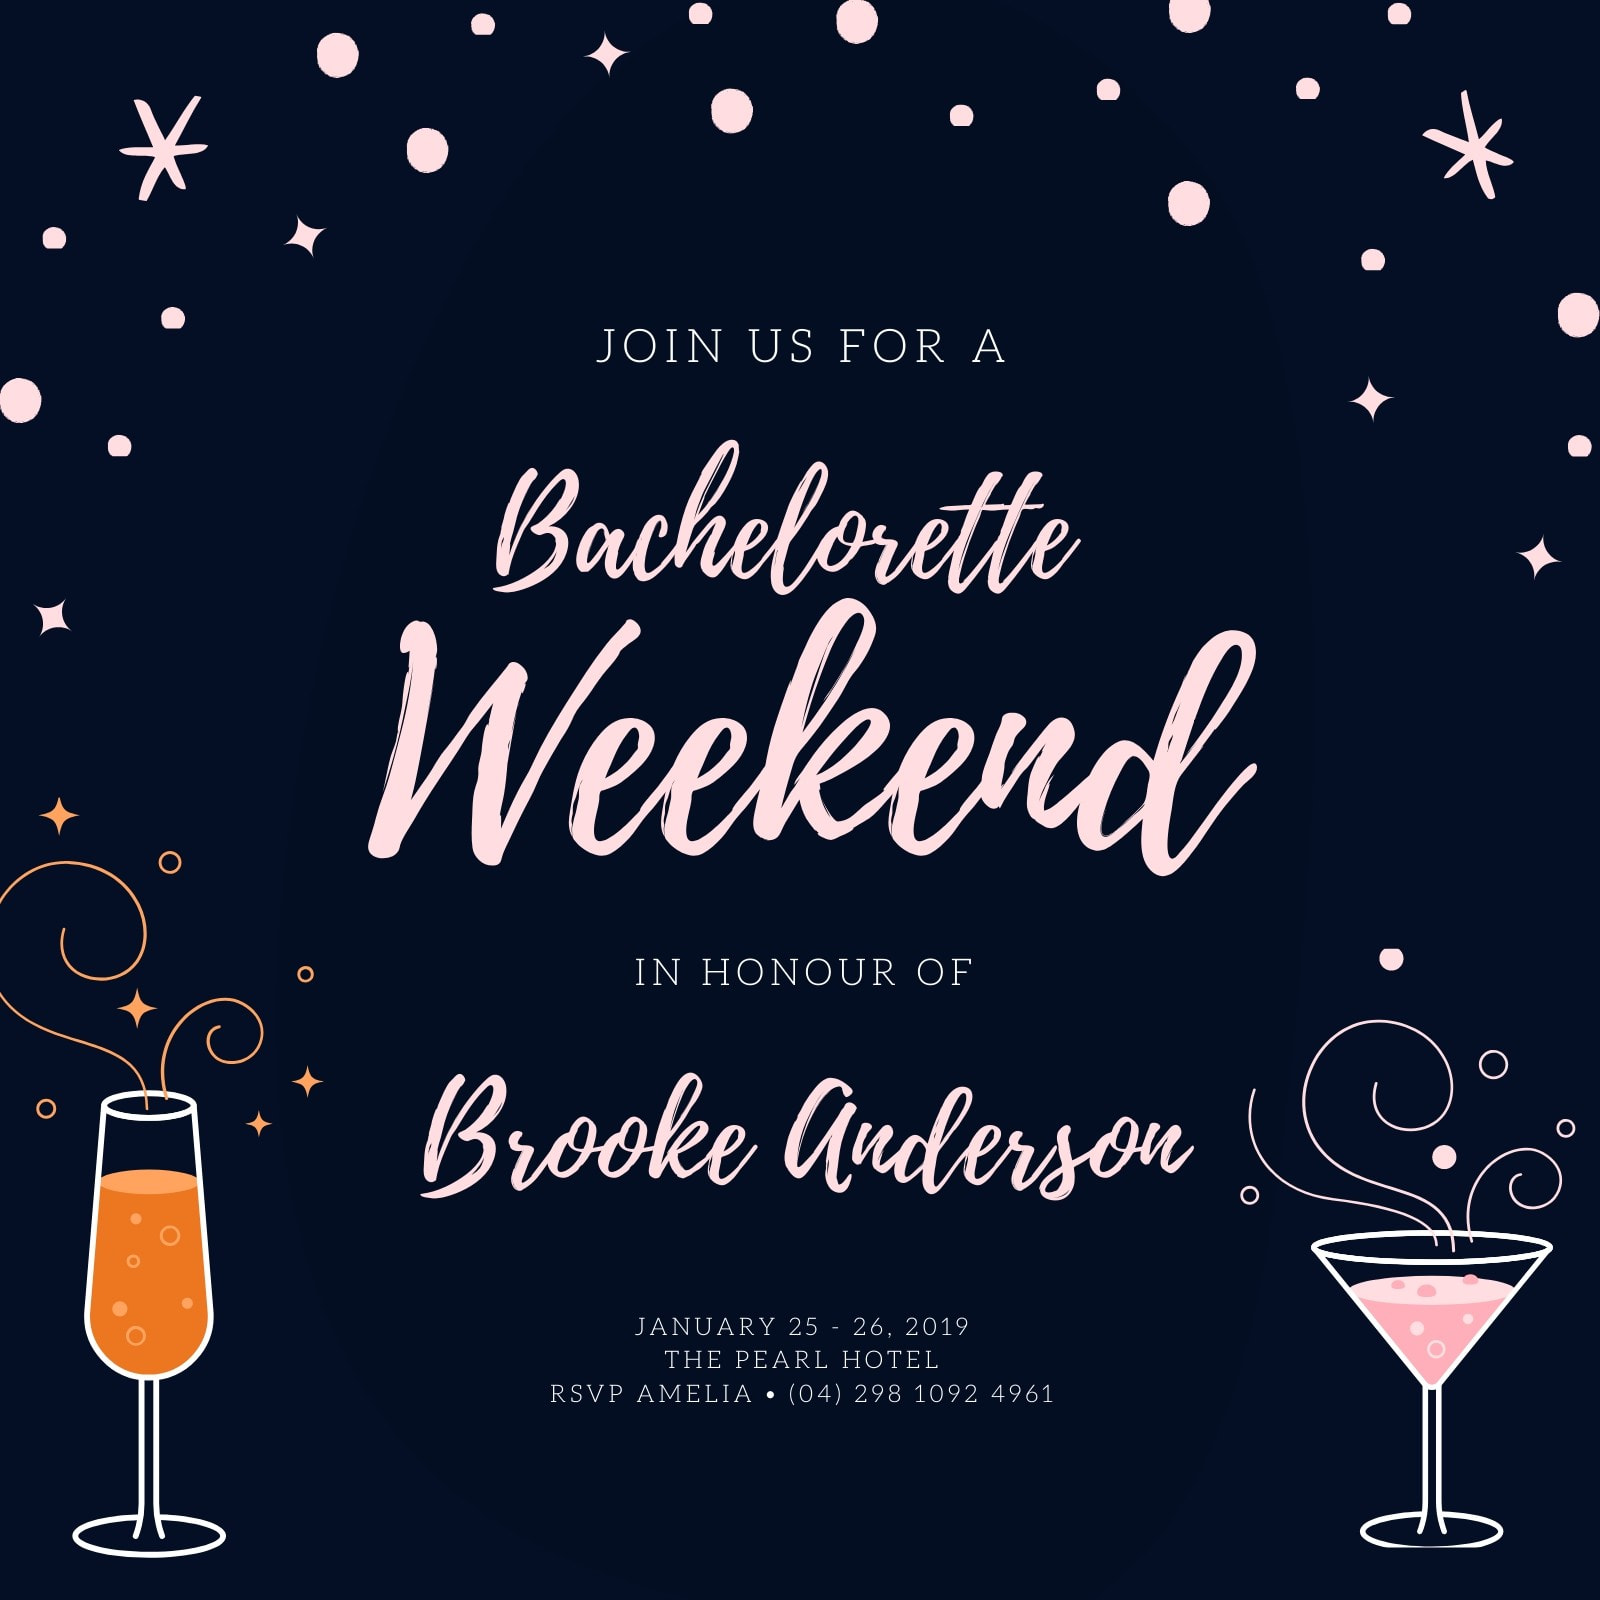 Blue and Pink Cocktail Bachelorette Party Invitation